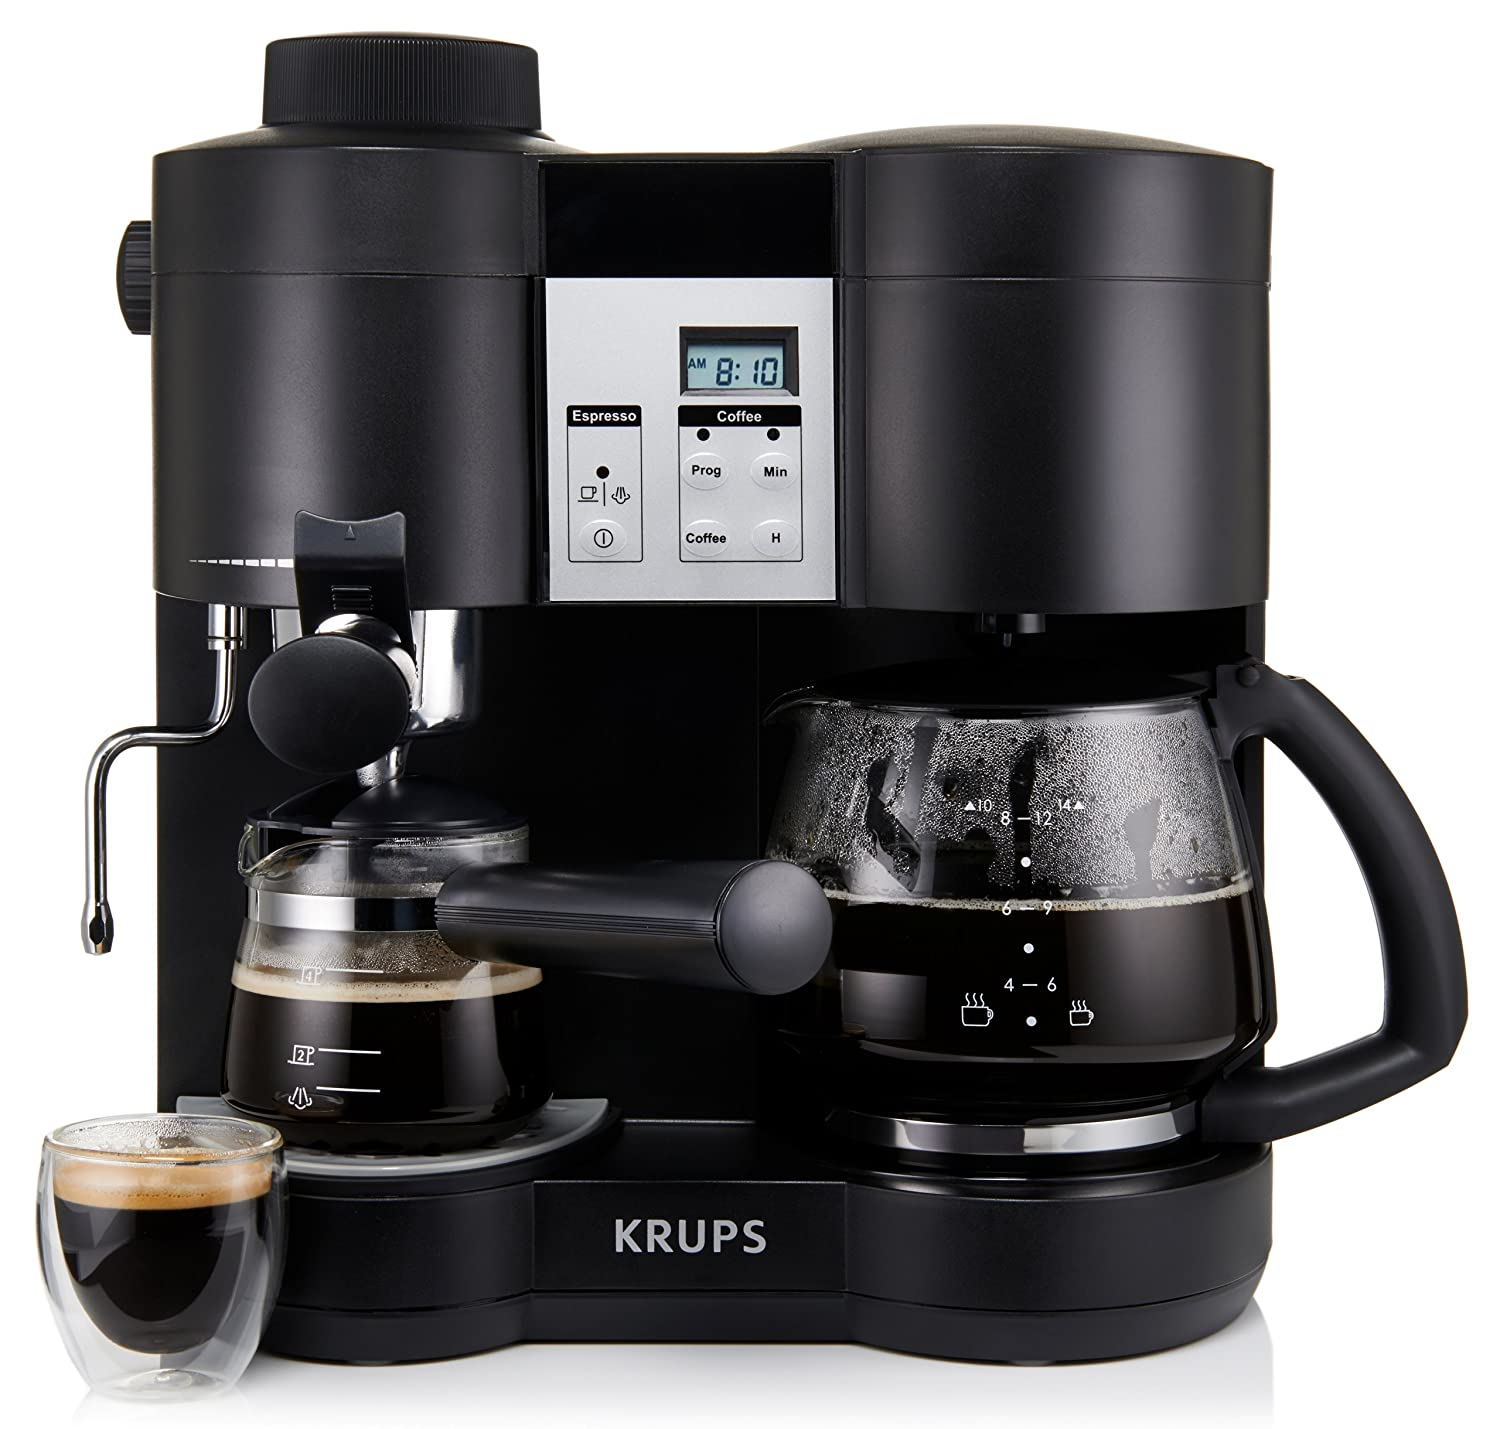 The Basics Of An Espresso Coffee Maker